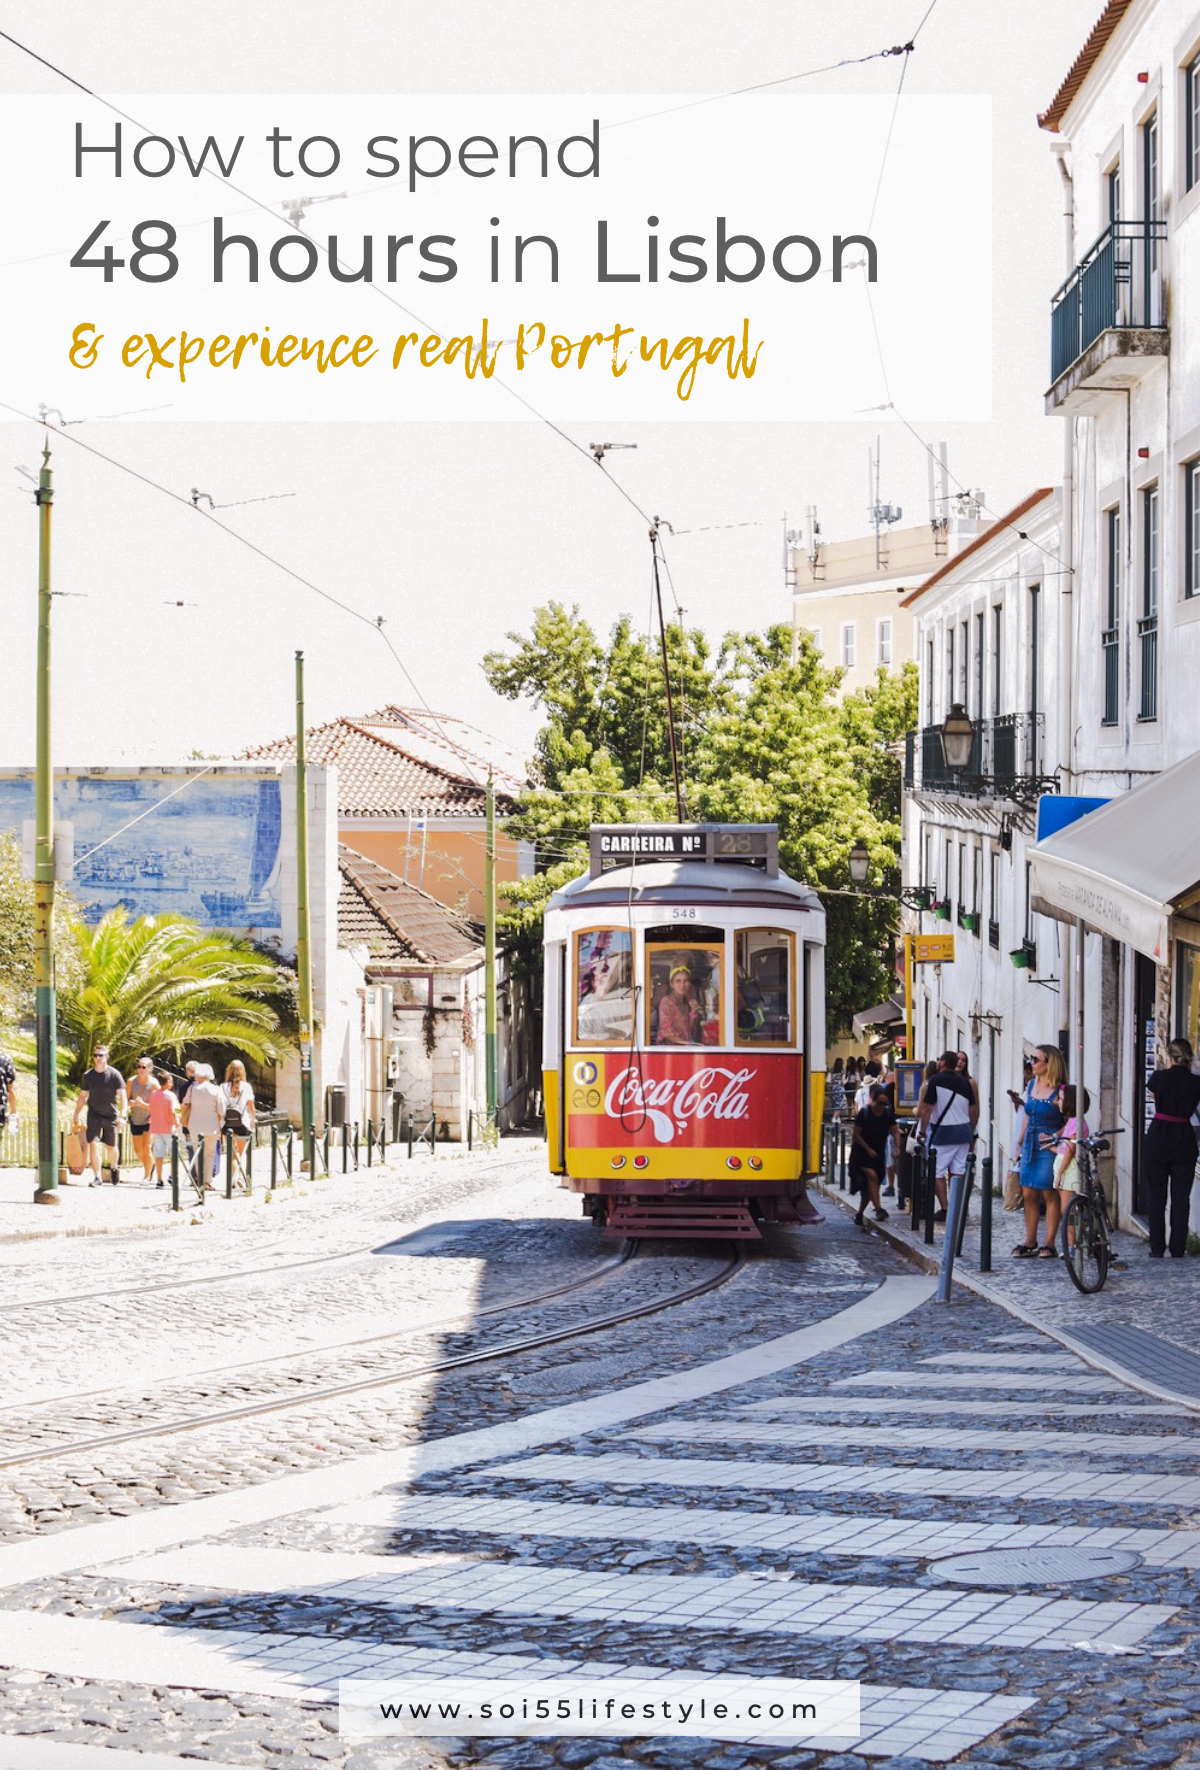 how-to-spend-48-hours-in-lisbon.png